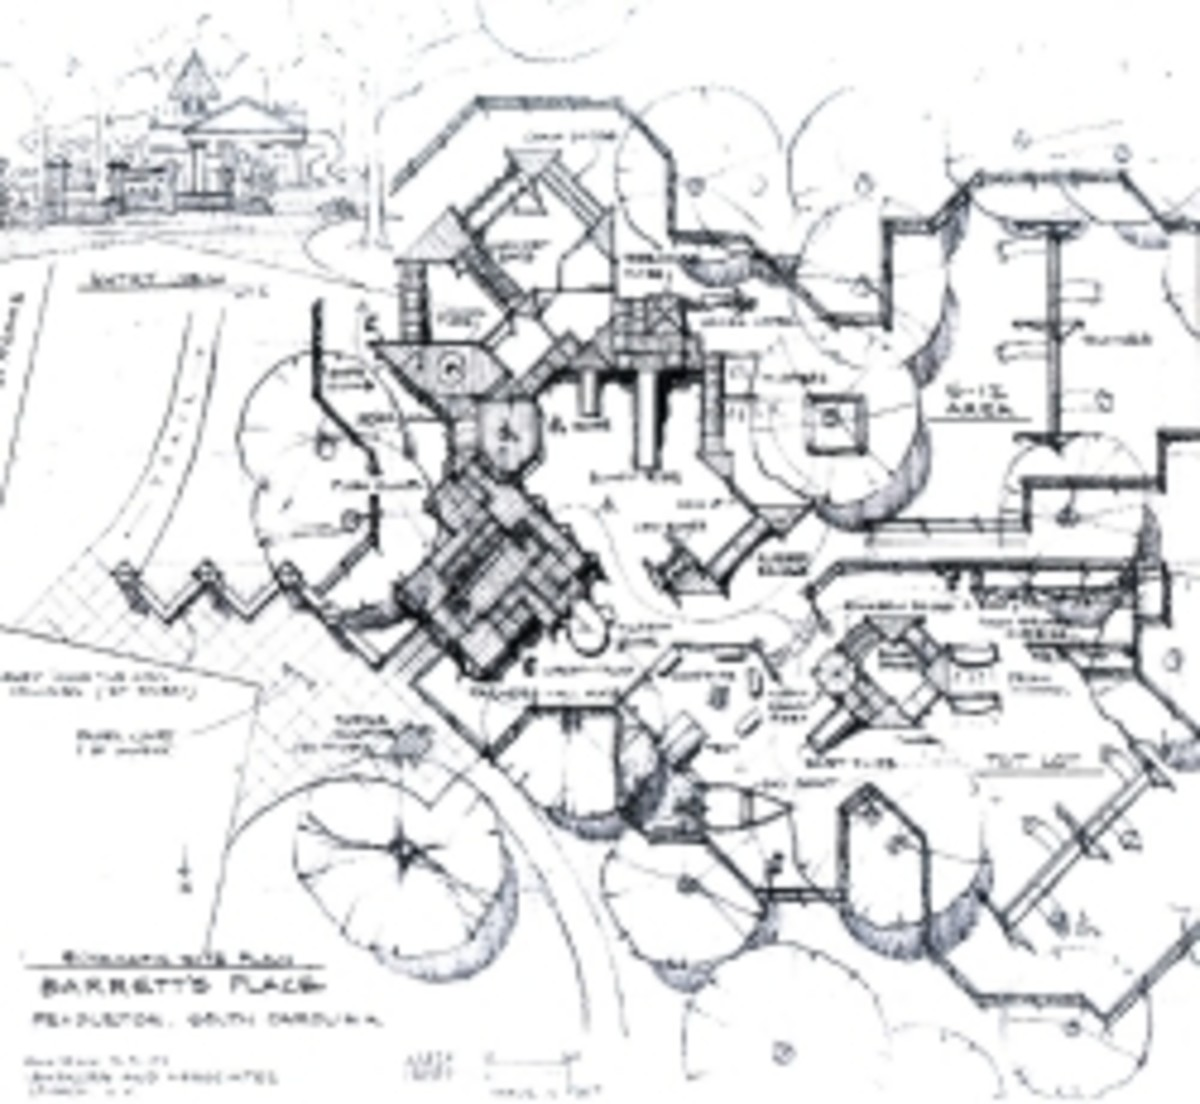 Barrett's Place Playground Drawing by Leathers and Associates